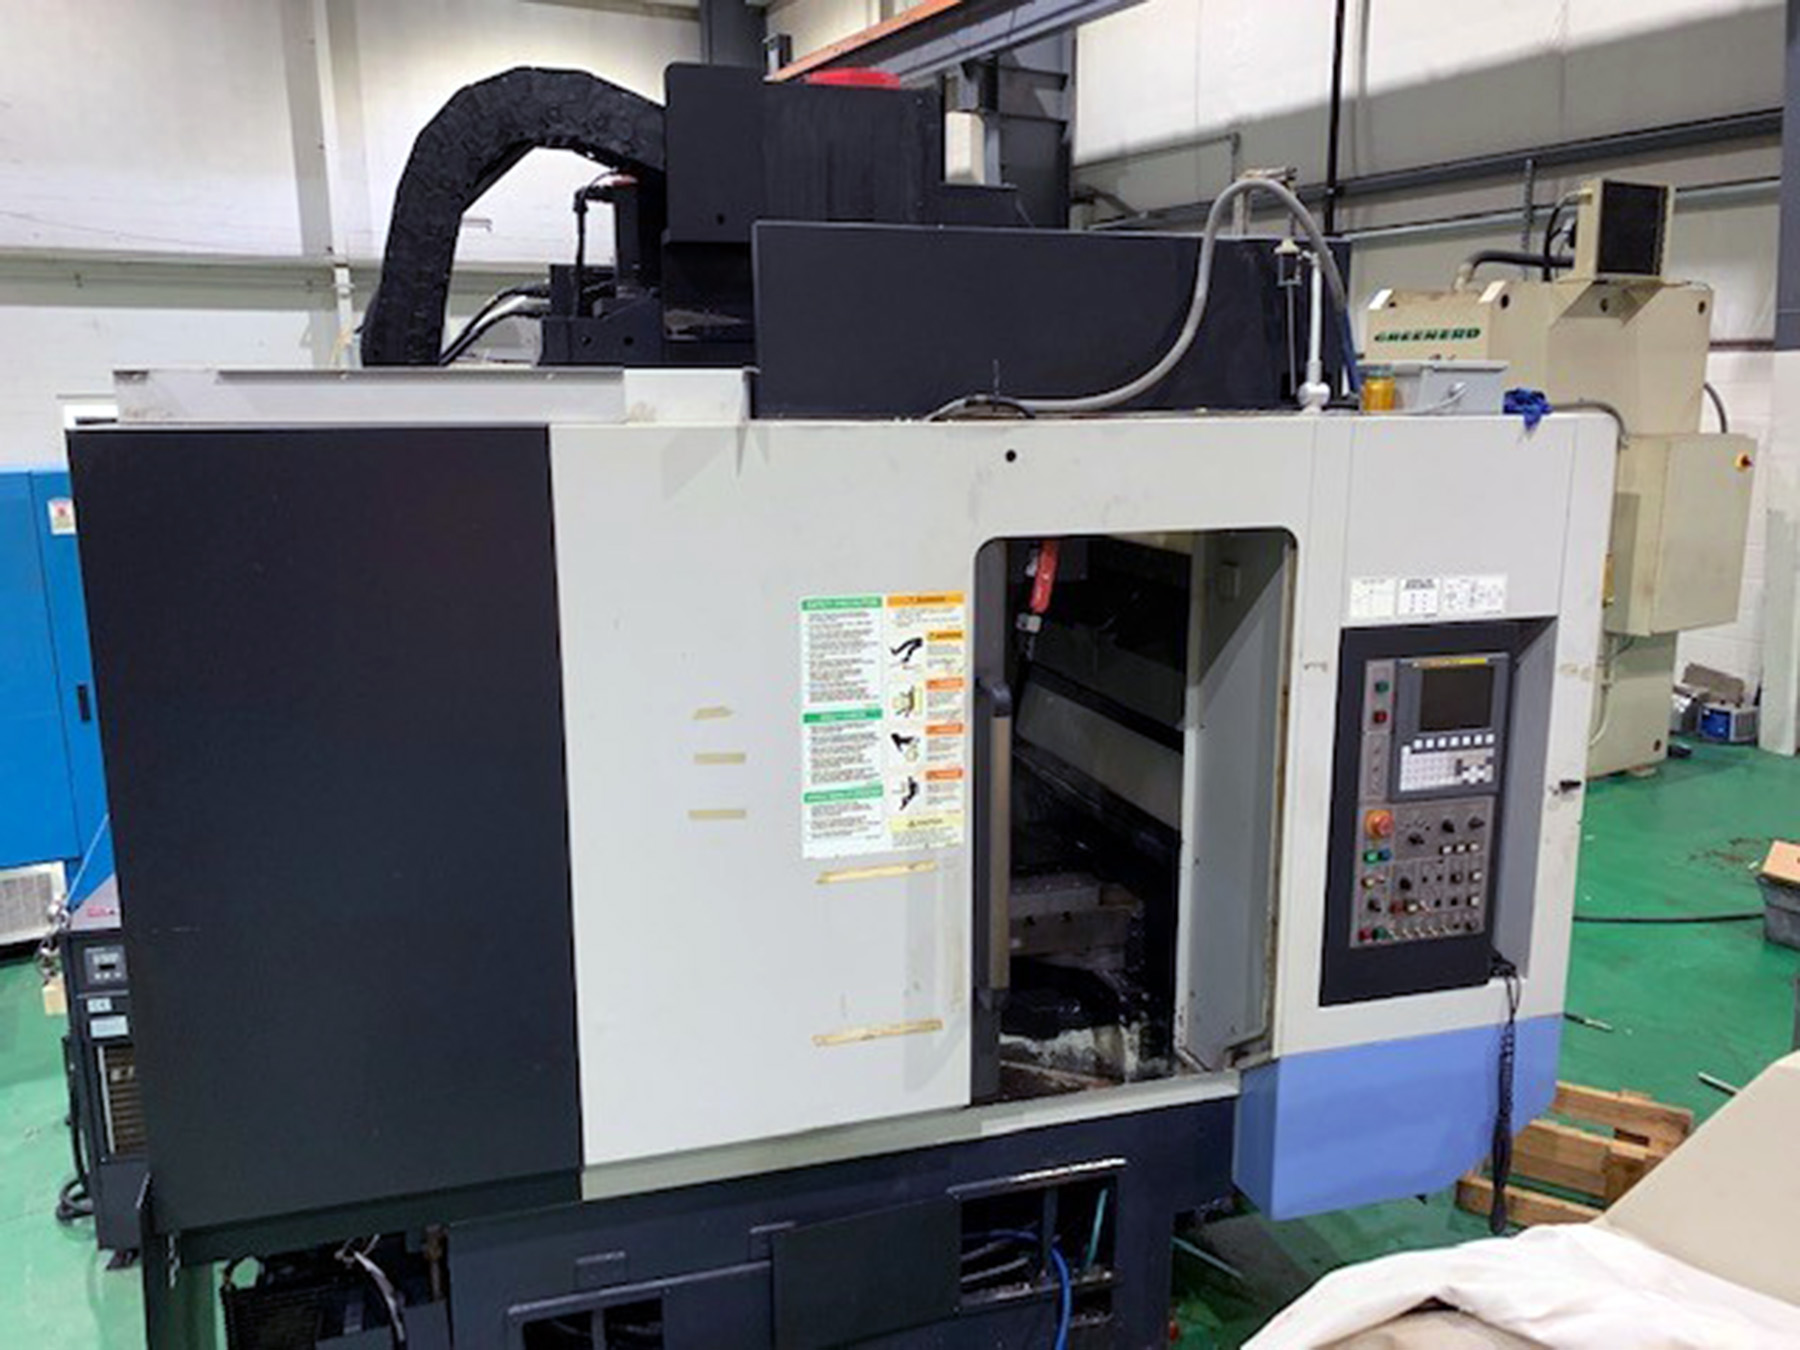 USED, DOOSAN VC 430 CNC VERTICAL MACHINING CENTER WITH PALLET CHANGER